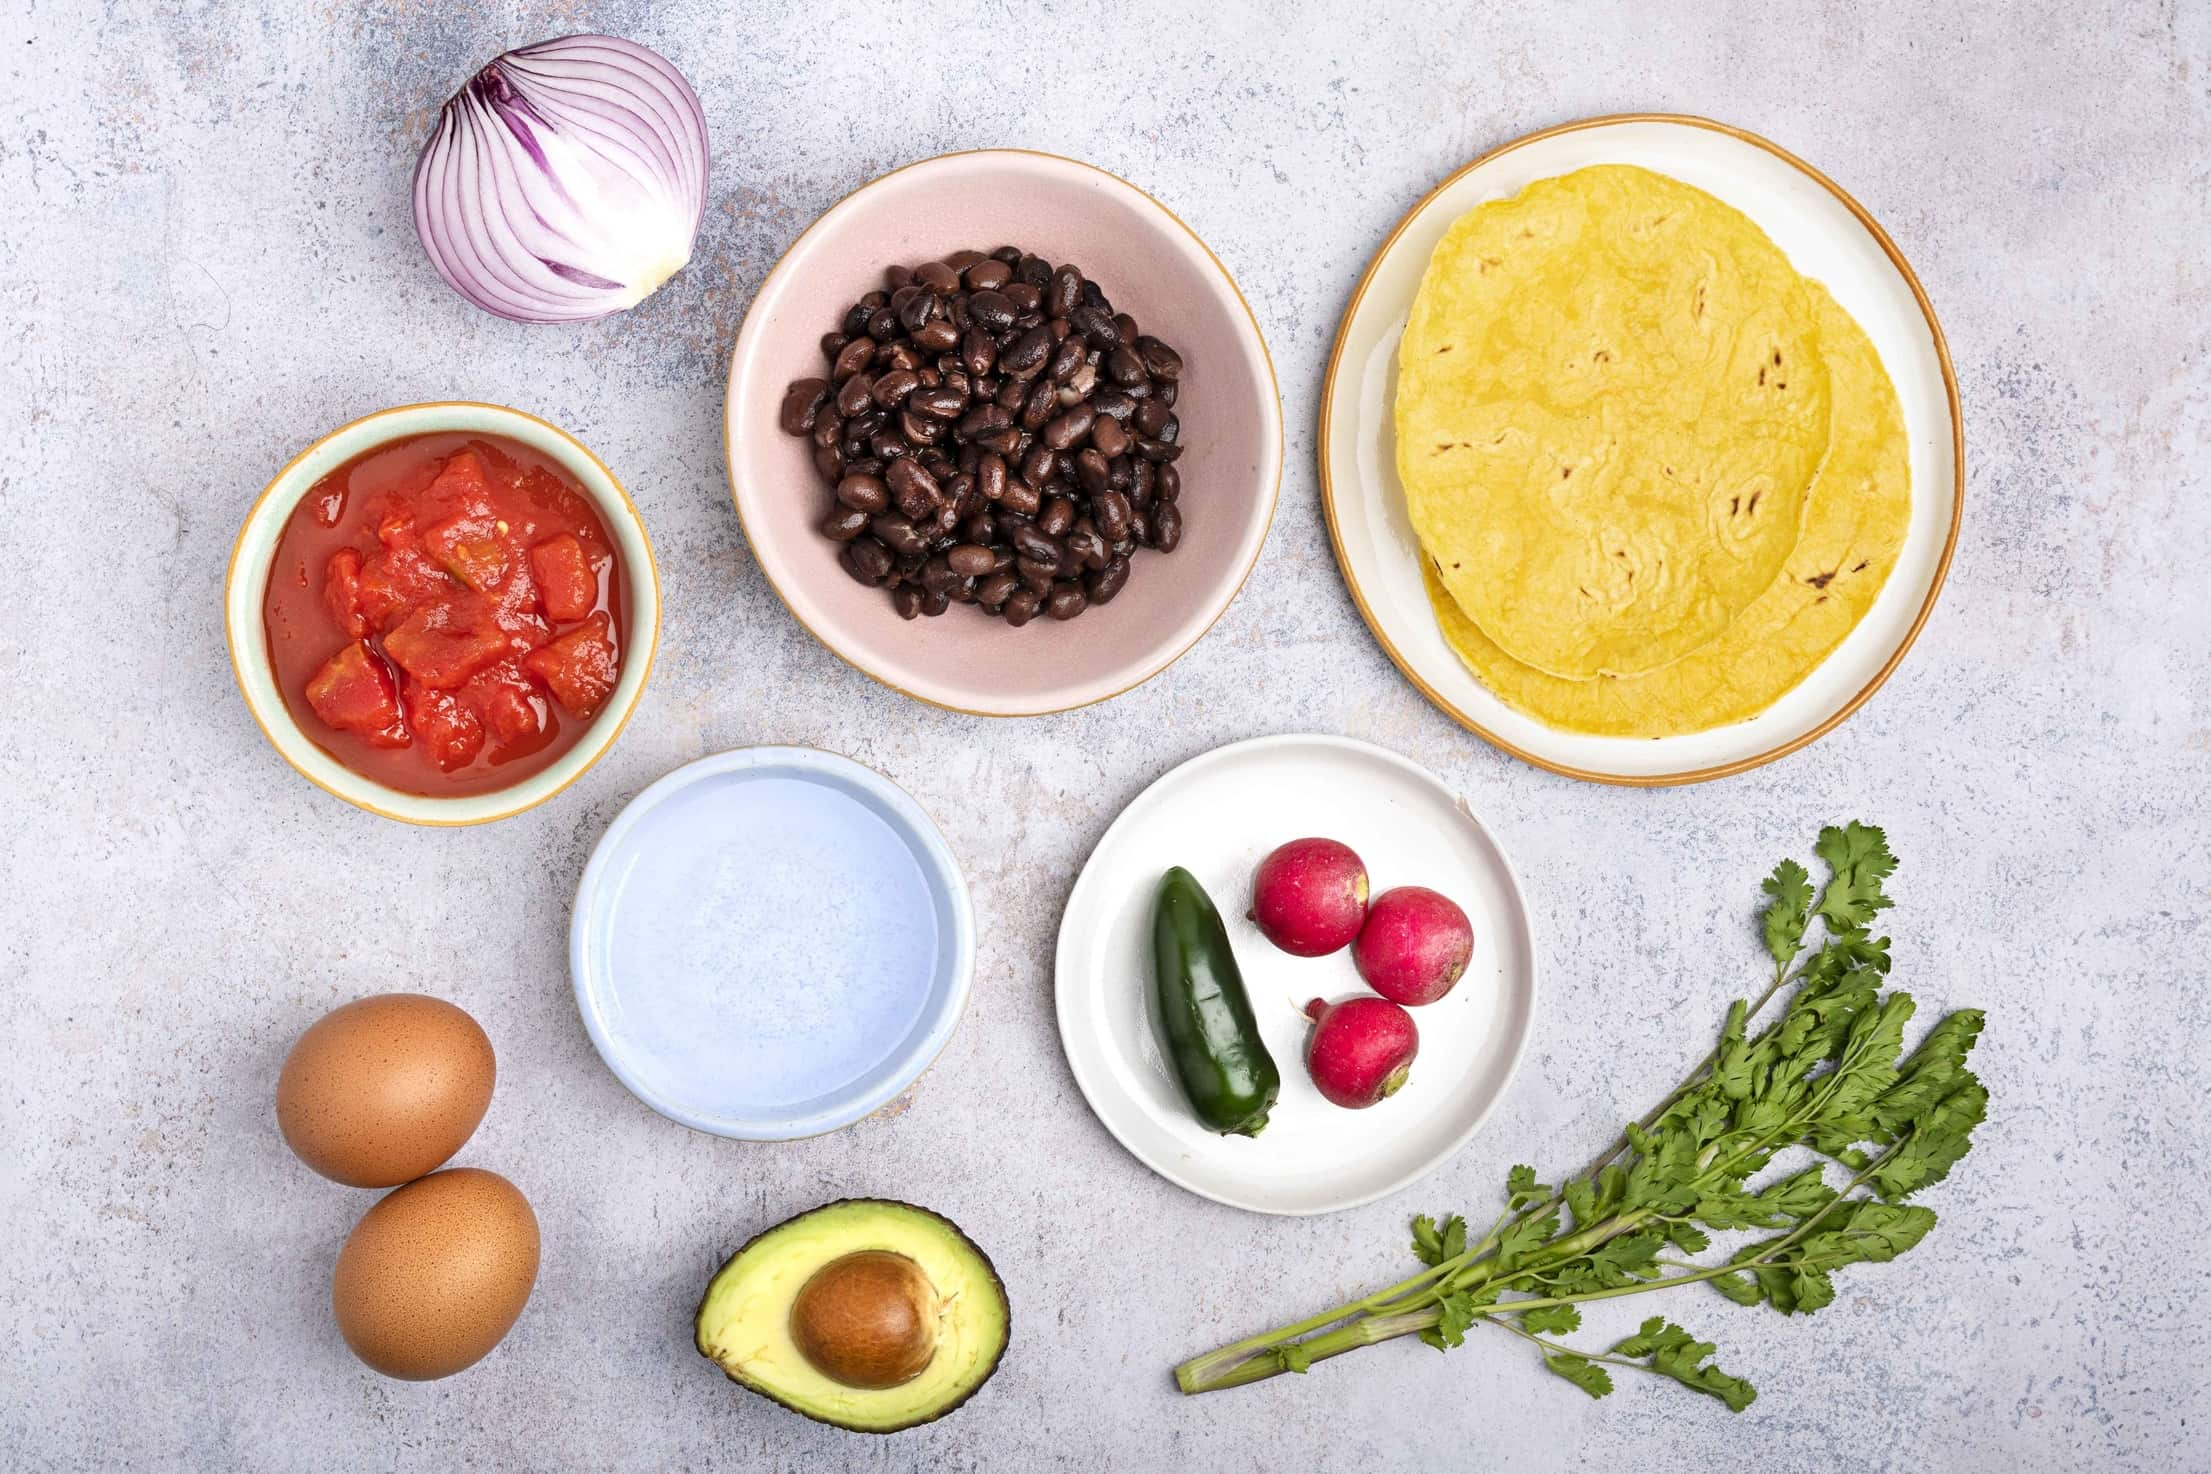 The ingredients for huevos rancheros laid out on a table, including tortillas, black beans, red onion, chopped tomatoes, radishes, jalapeños, eggs, avocado and coriander   Hurry The Food Up